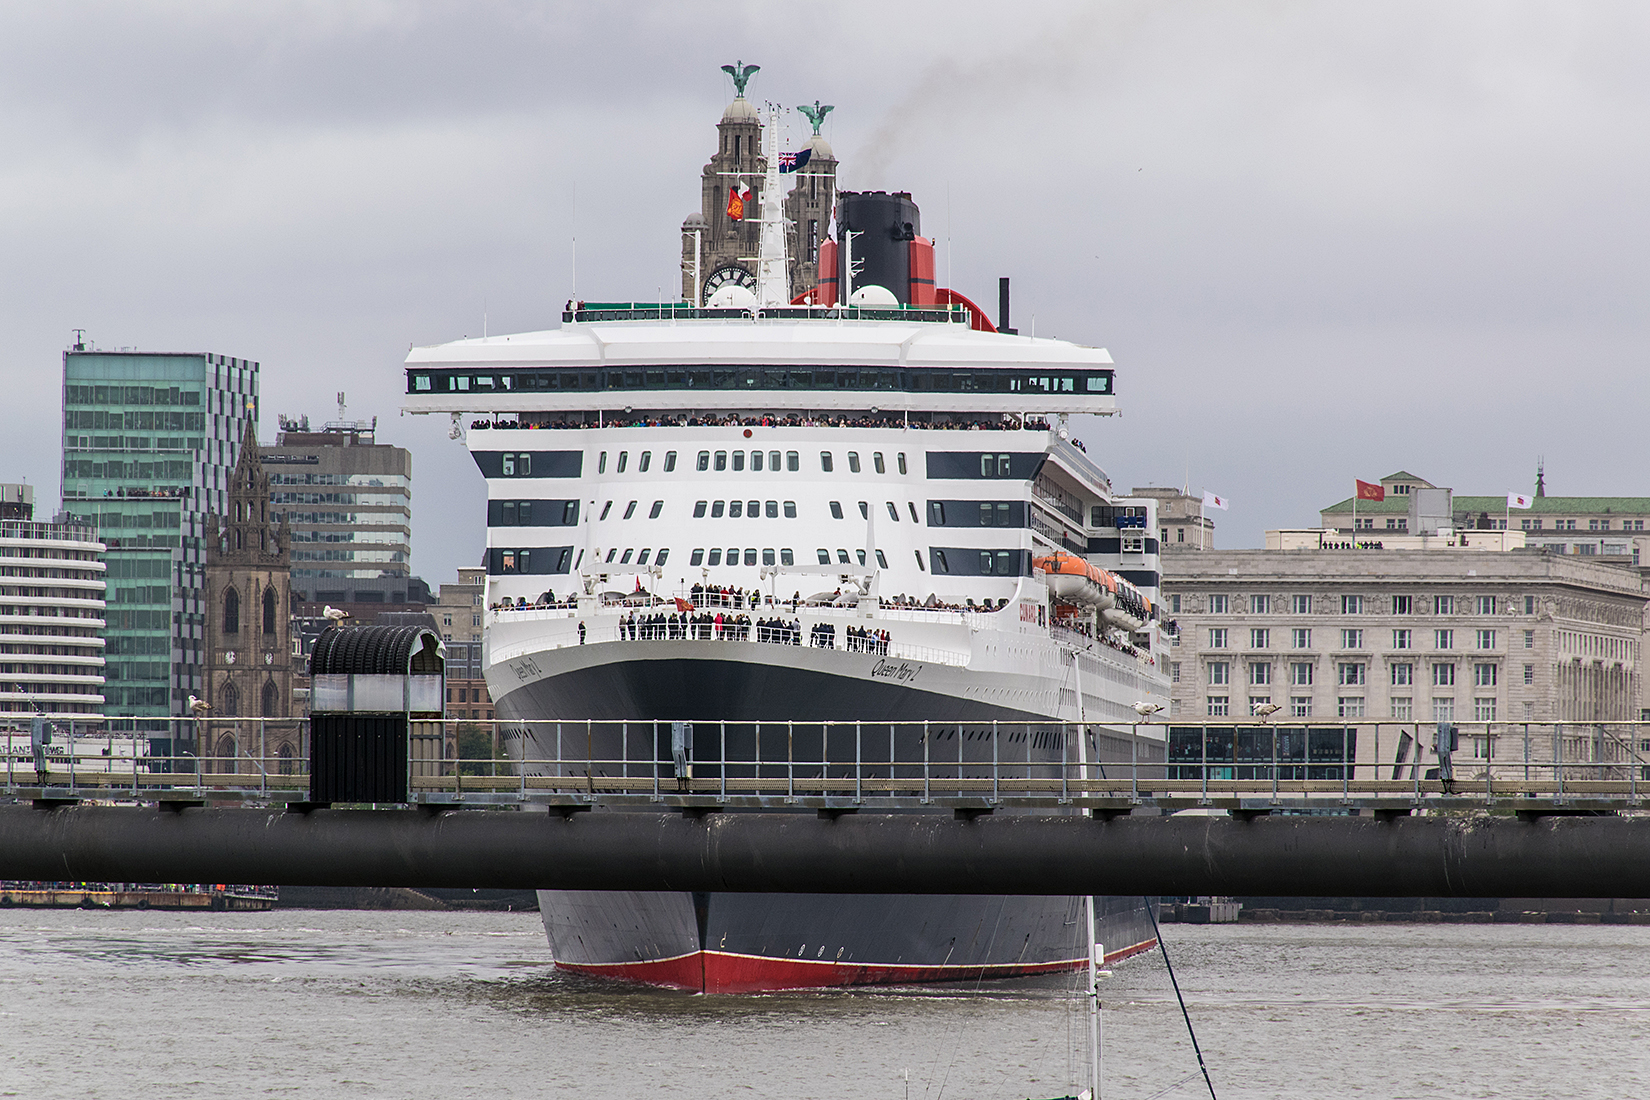 Queen Mary 2 in mid-manouver